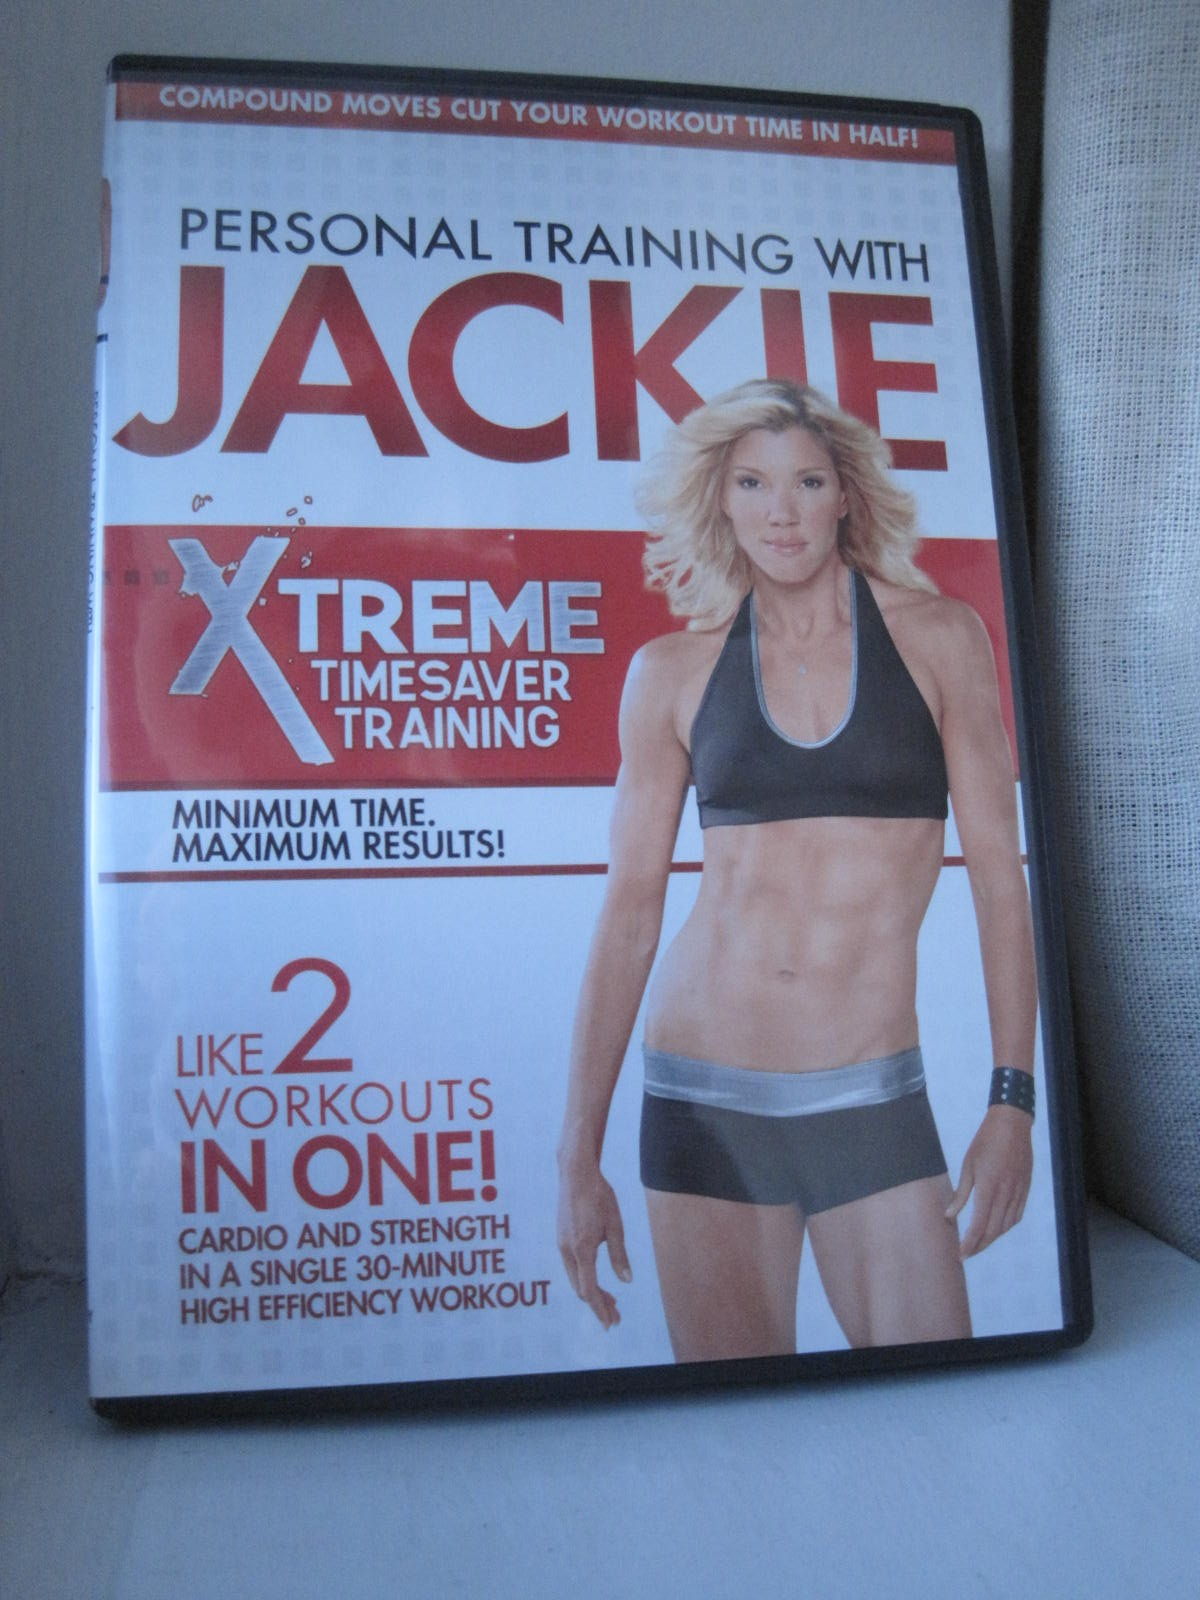 Personal Training With Jackie Xtreme Timesaver Training DVD, My Thoughts